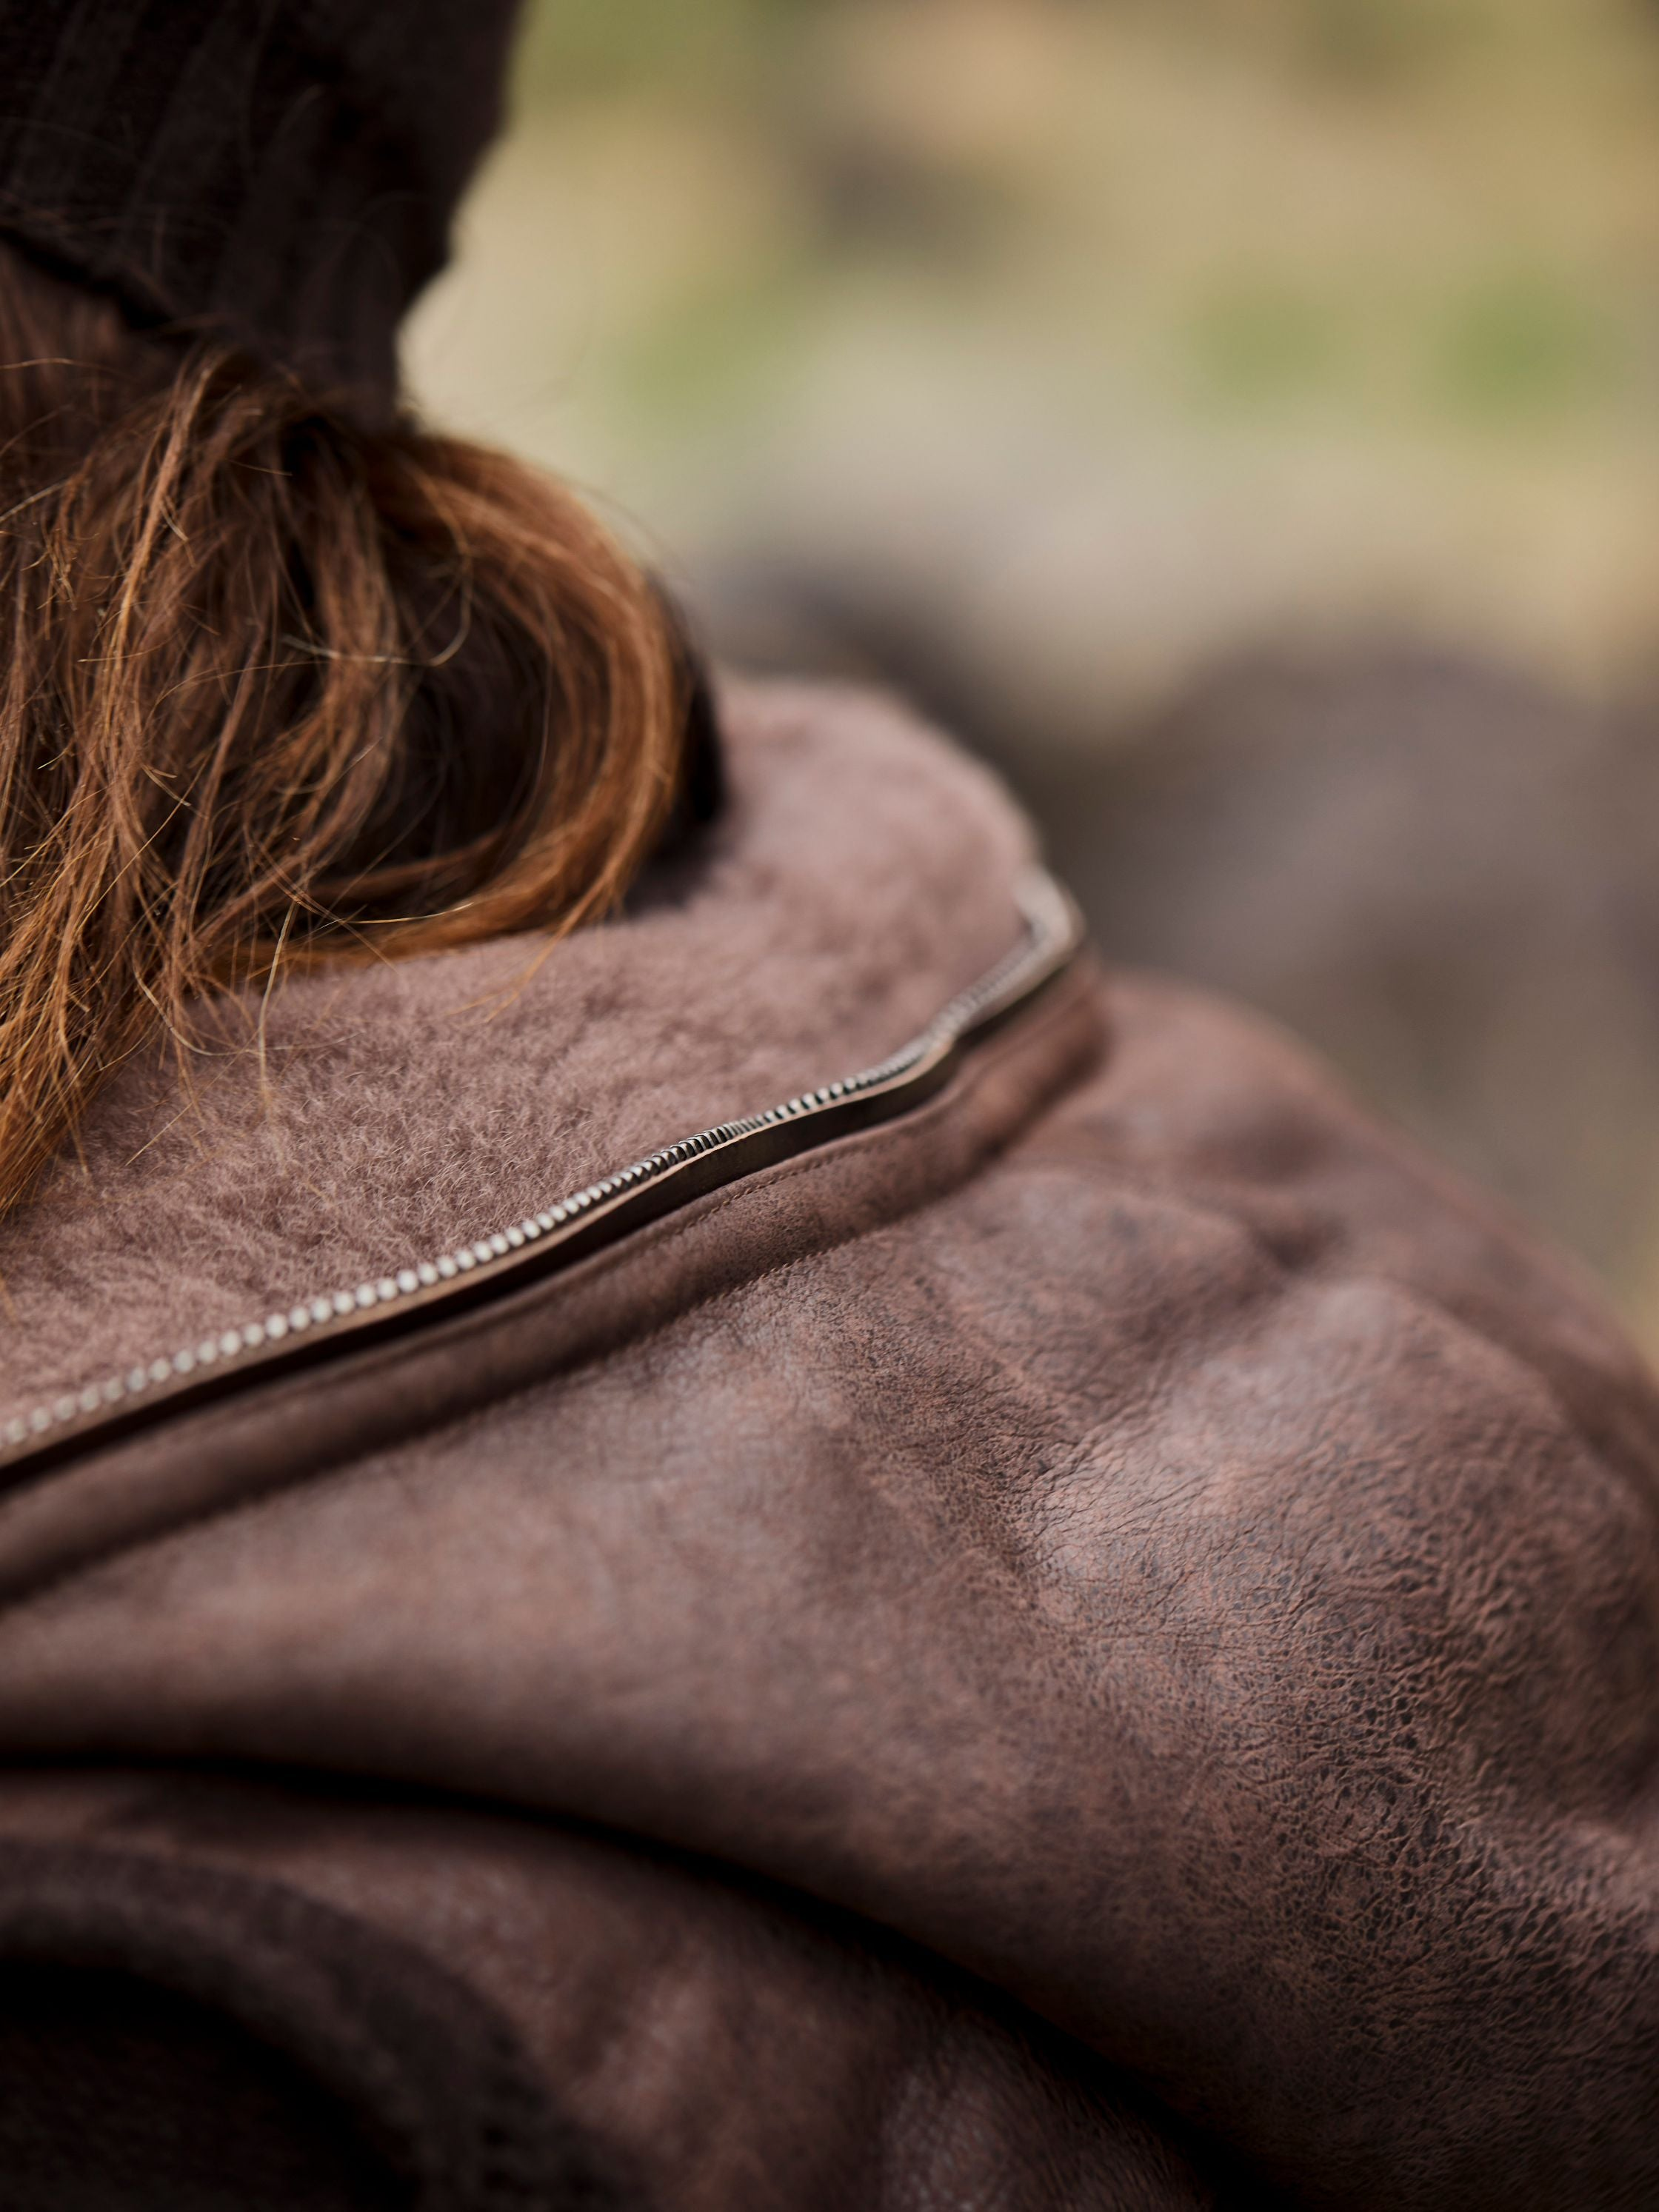 The Spanish fleece-lined hood and body can only be compared to goose down in one's open hand